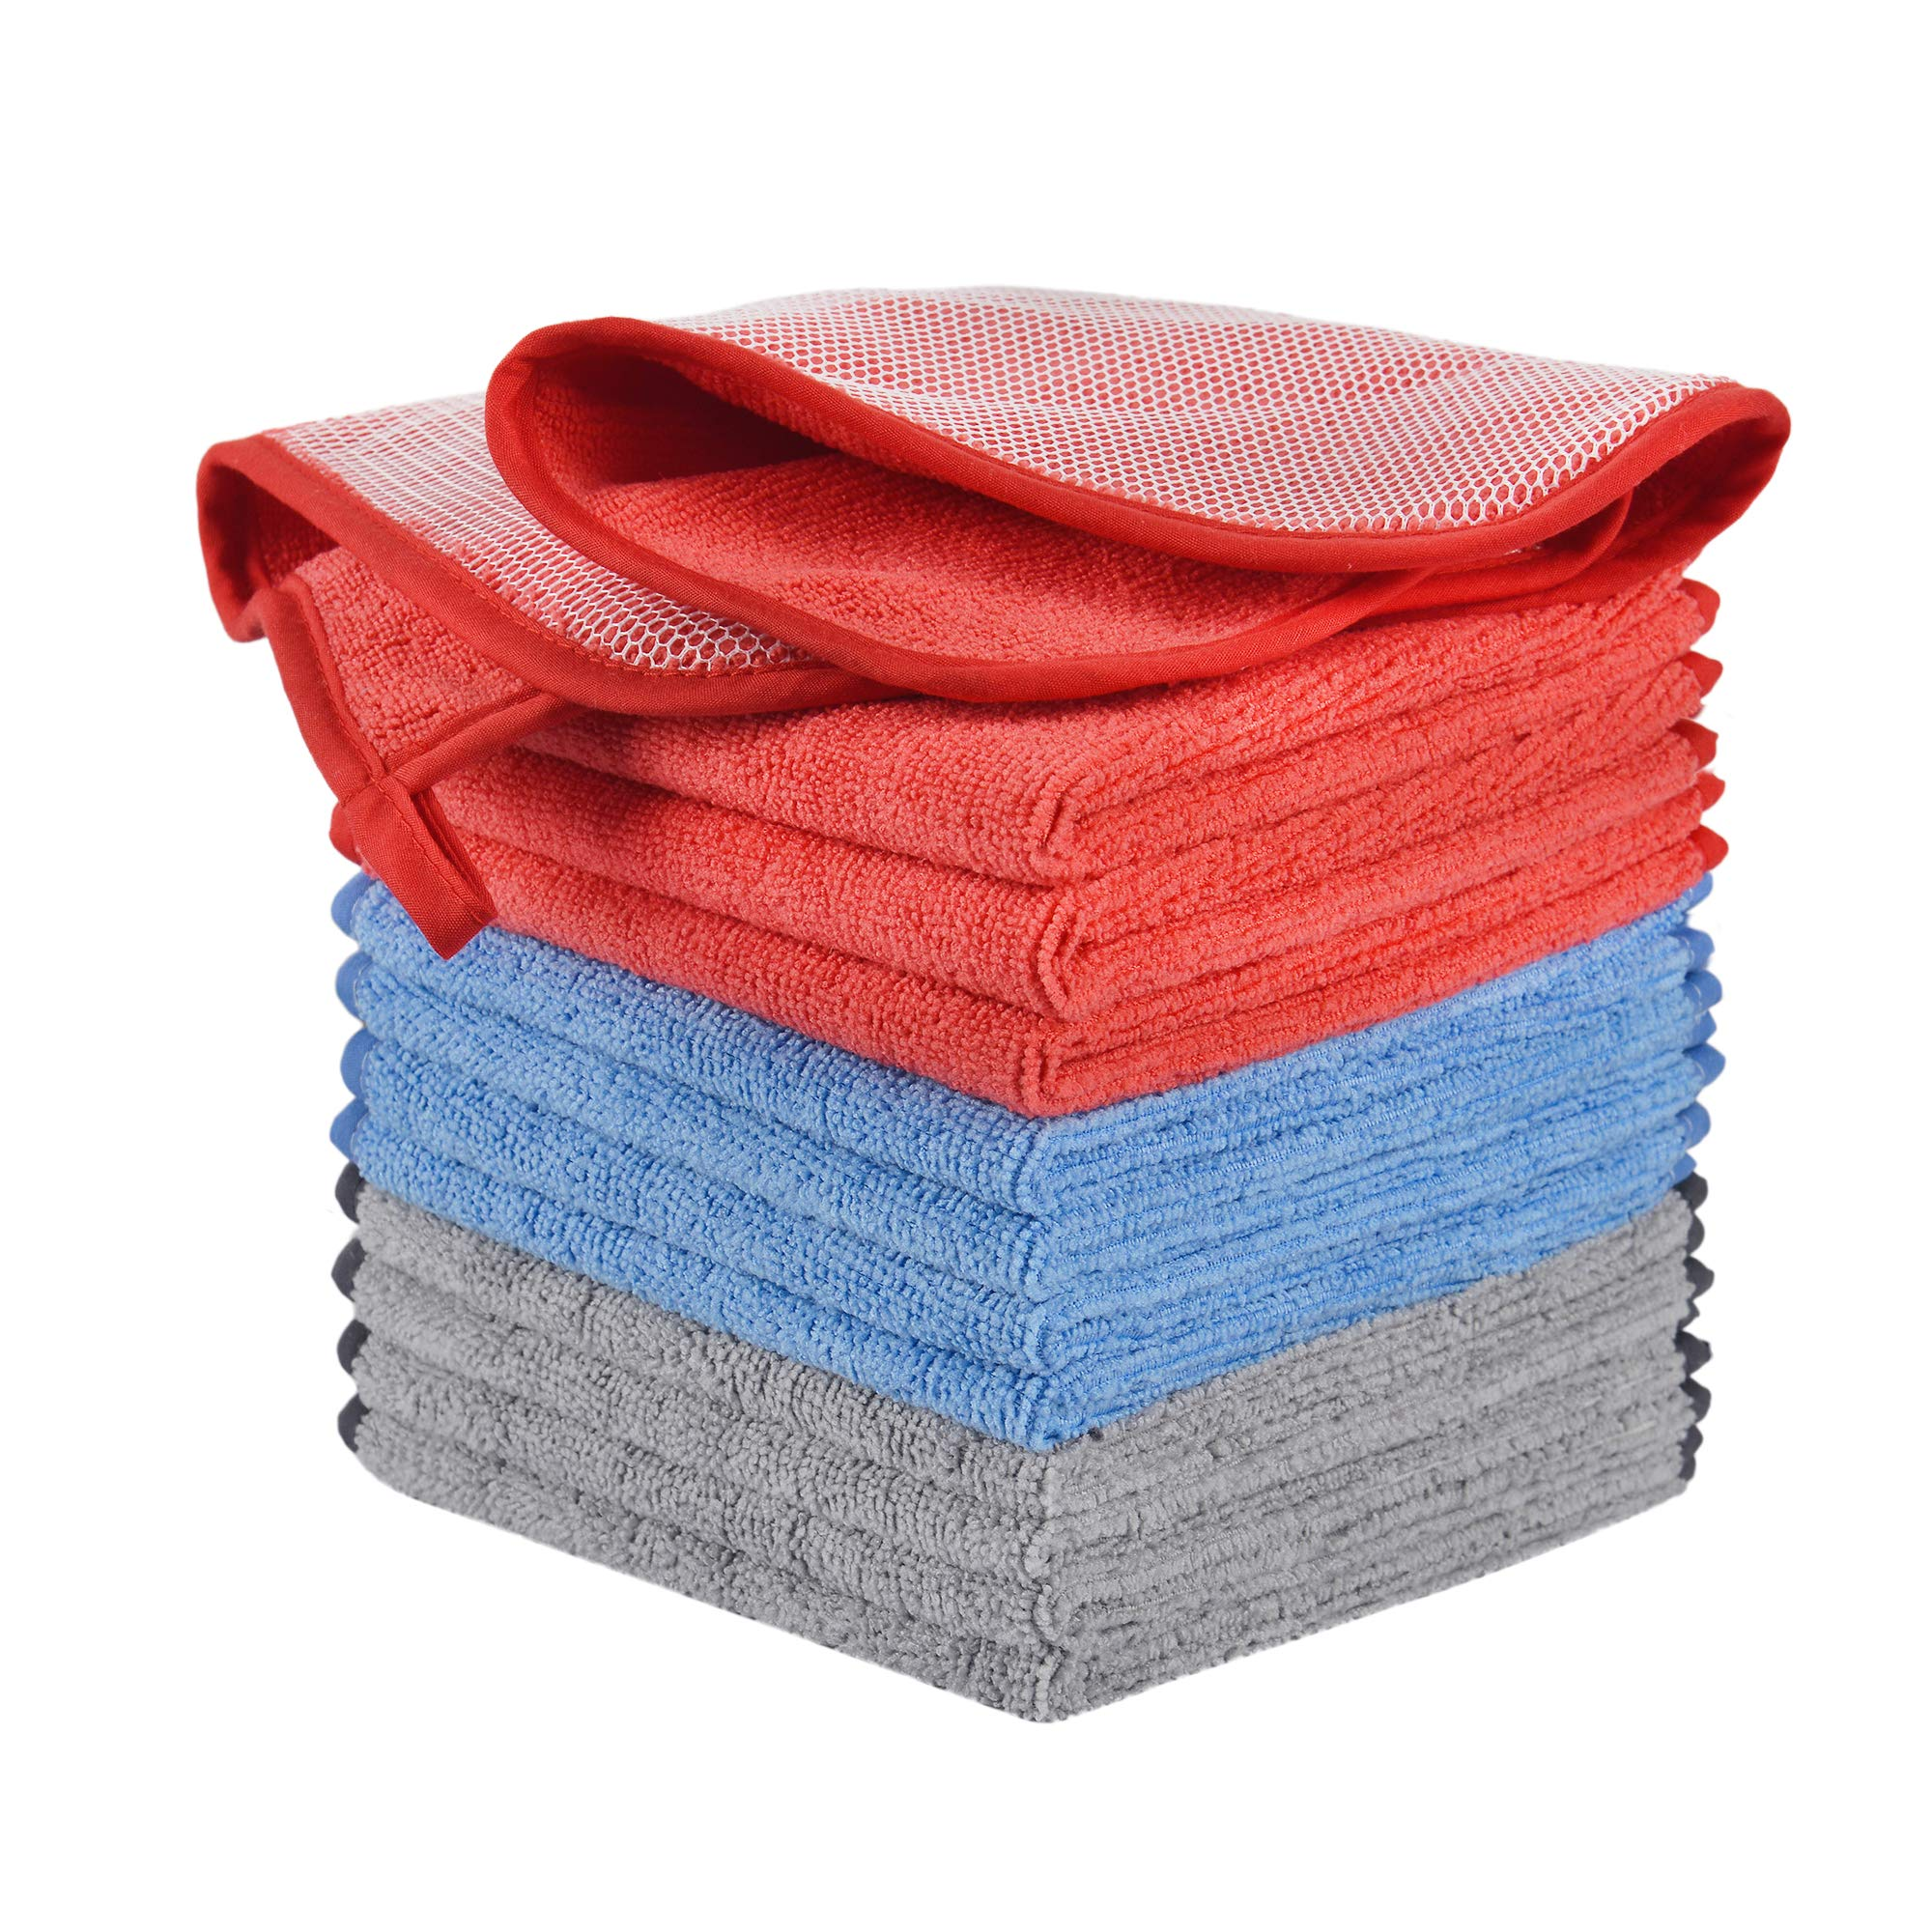 Luckiss Soft Microfiber Dish Cloths High Absorbent Fast Drying Household Bar Mop Dish Washing and Cleaning Cloths Cloth with Poly Scour Side for Kitchen Window Glass Car Wash 12 X 12 inch